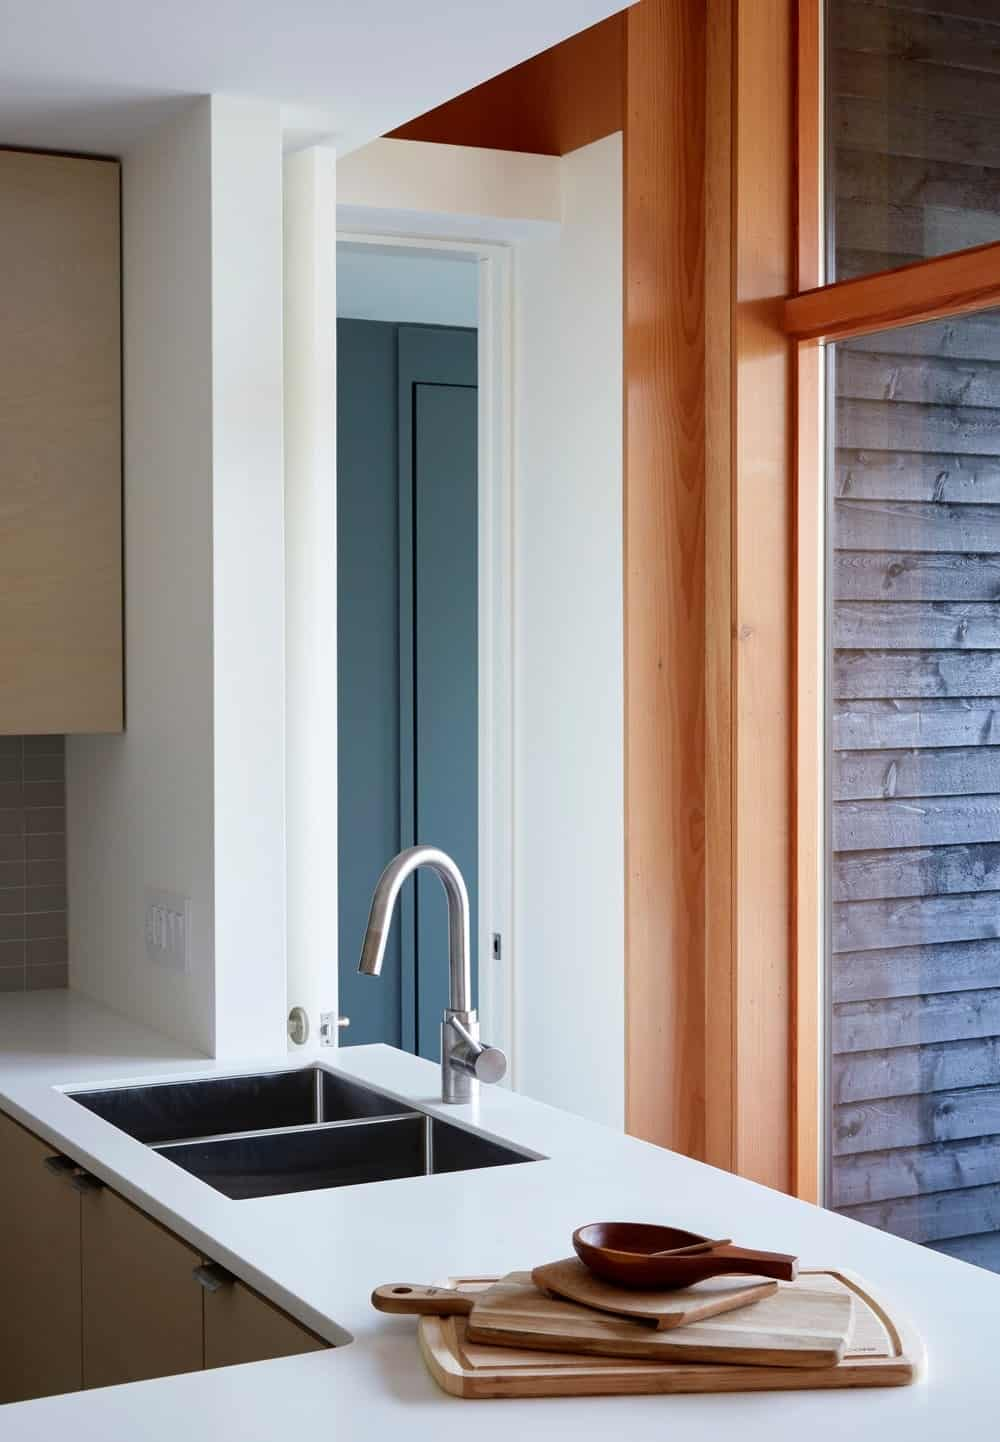 Kitchen featuring white walls and smooth white countertops with a single sink. Photo credit: Janet Kimber